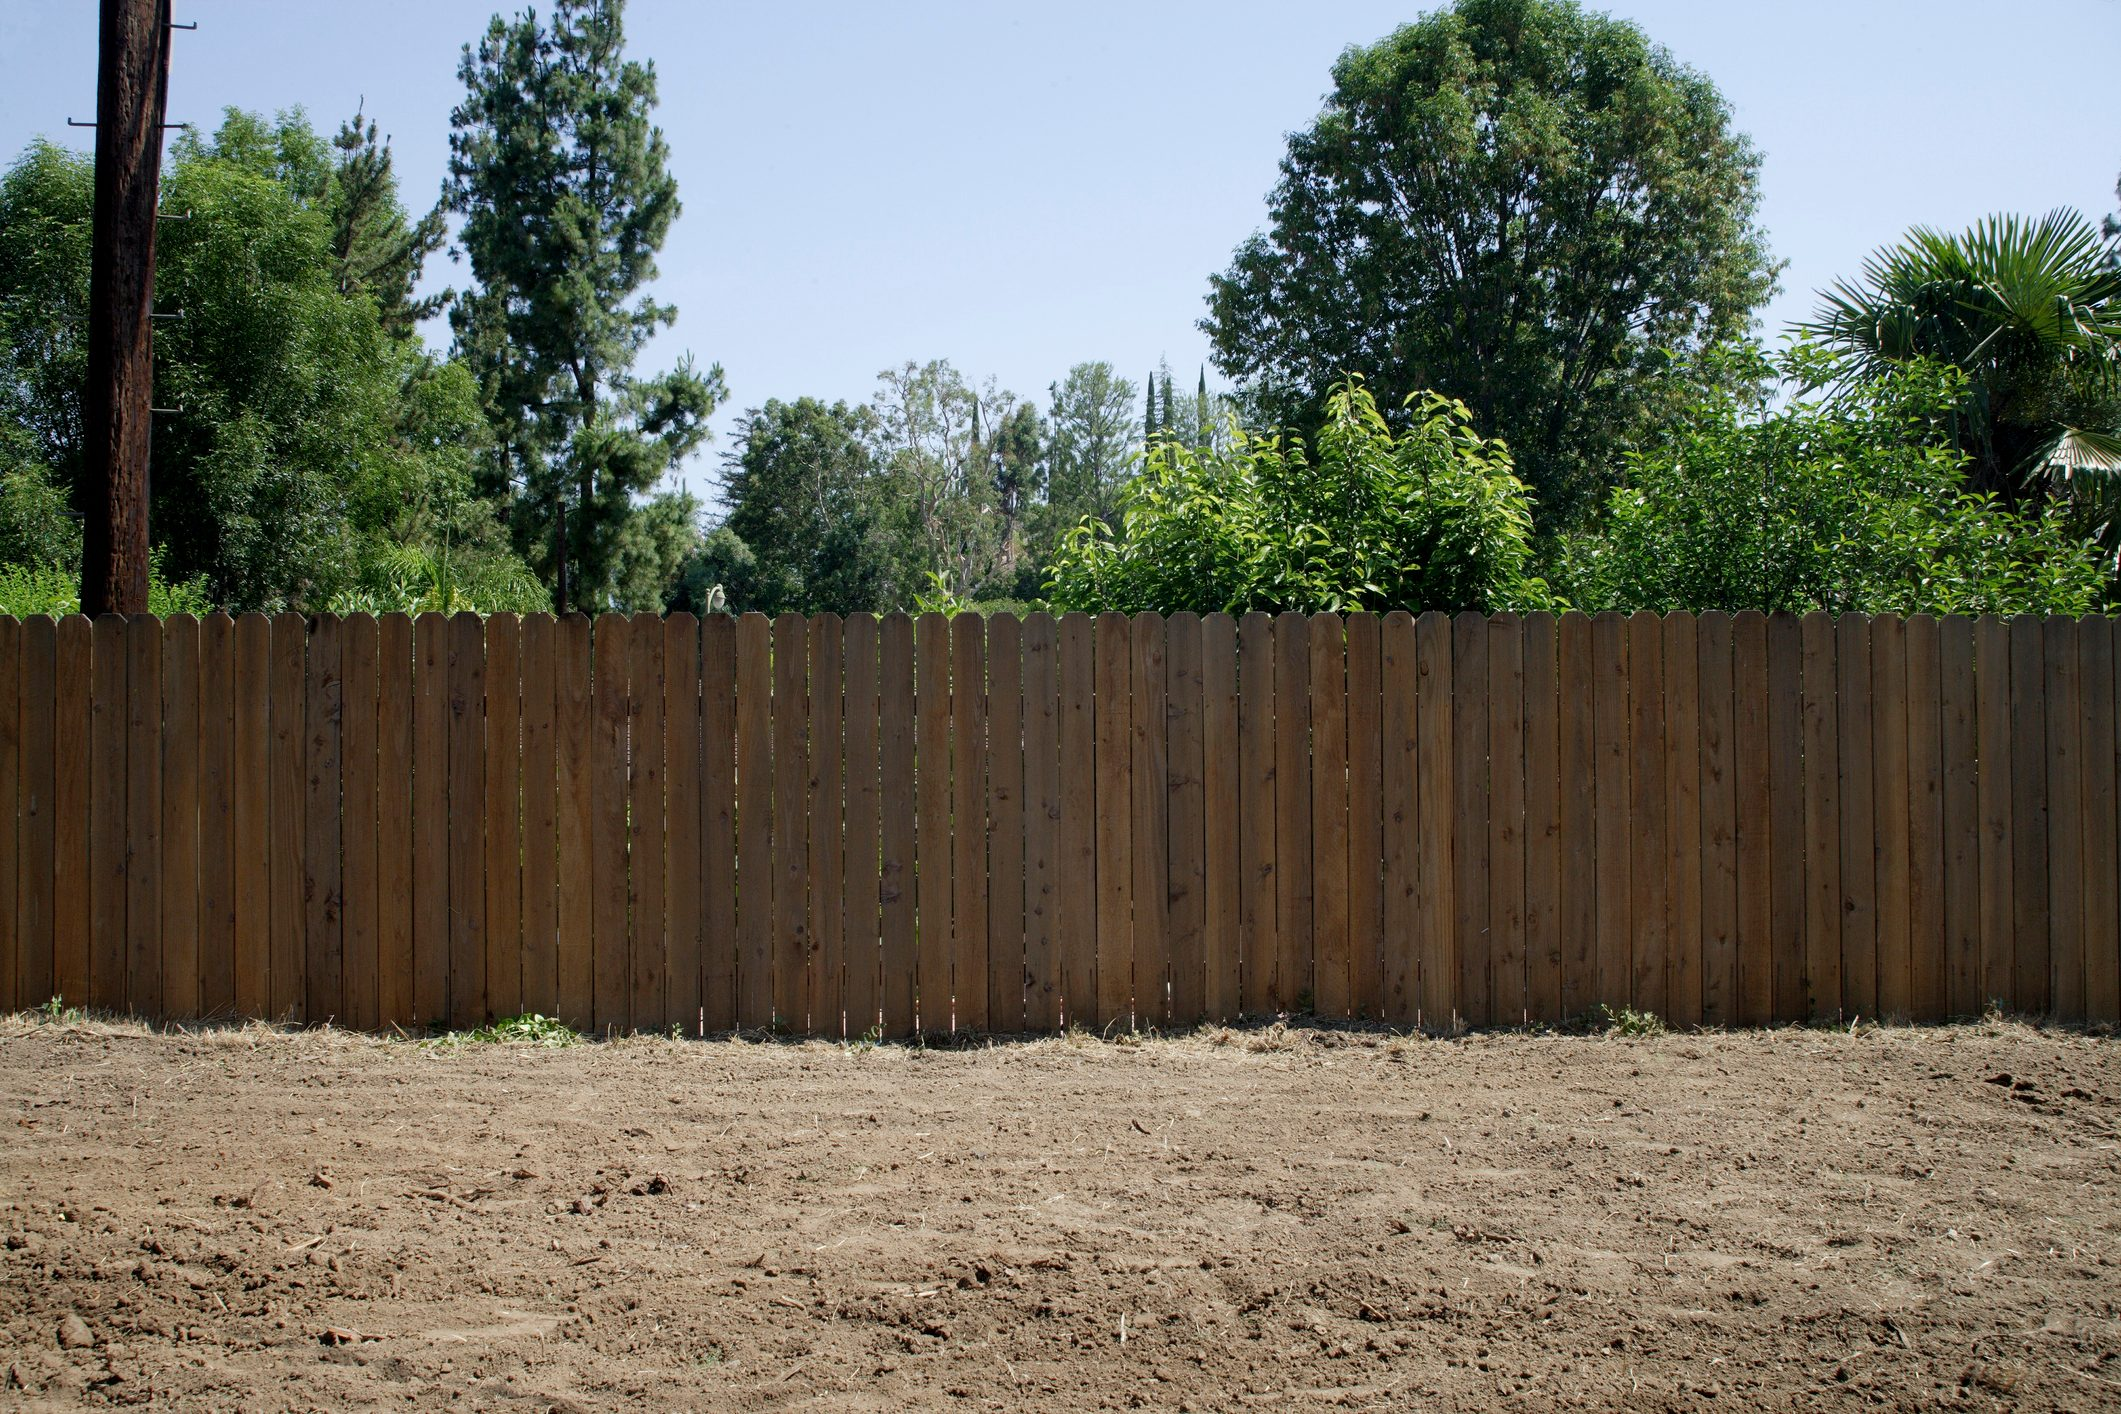 Dirt yard and wood fence on sunny day